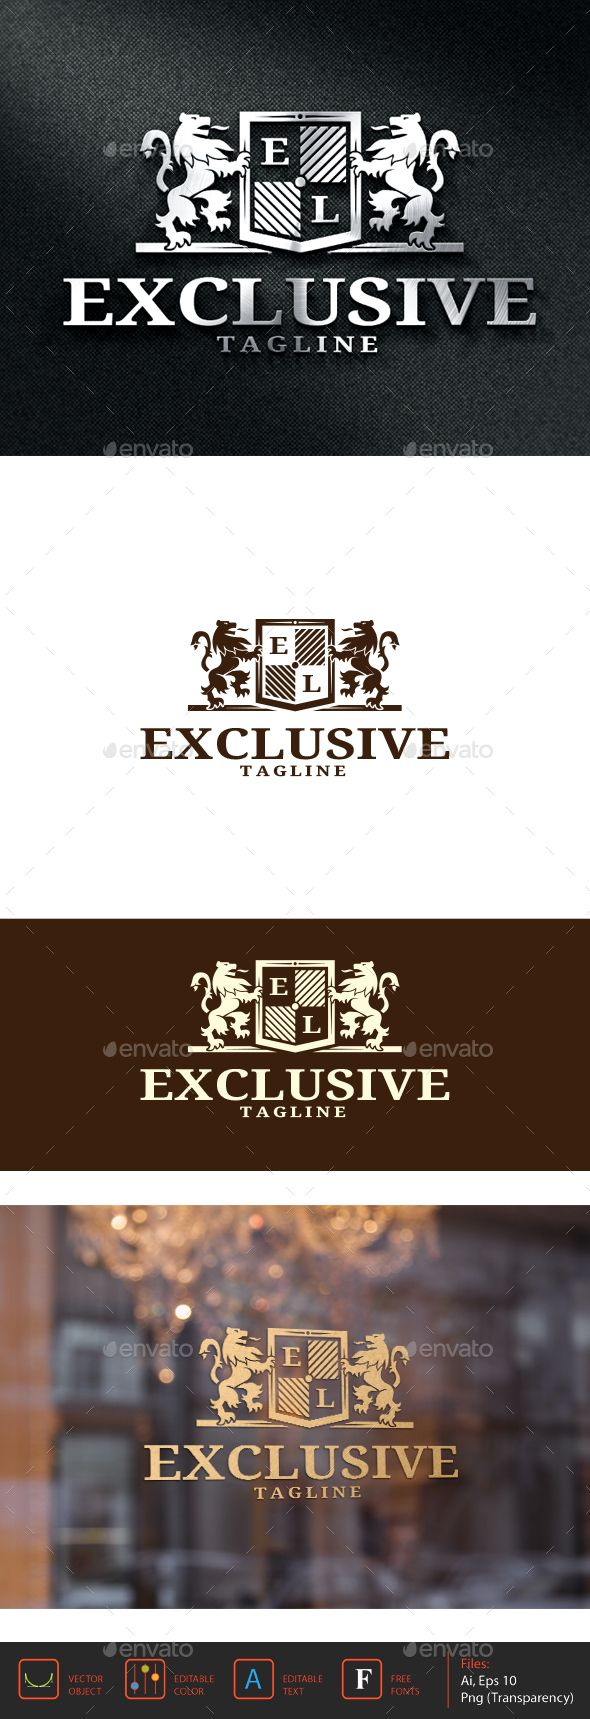 919 best fashion logo template images on pinterest logo templates exclusive logo template thecheapjerseys Gallery